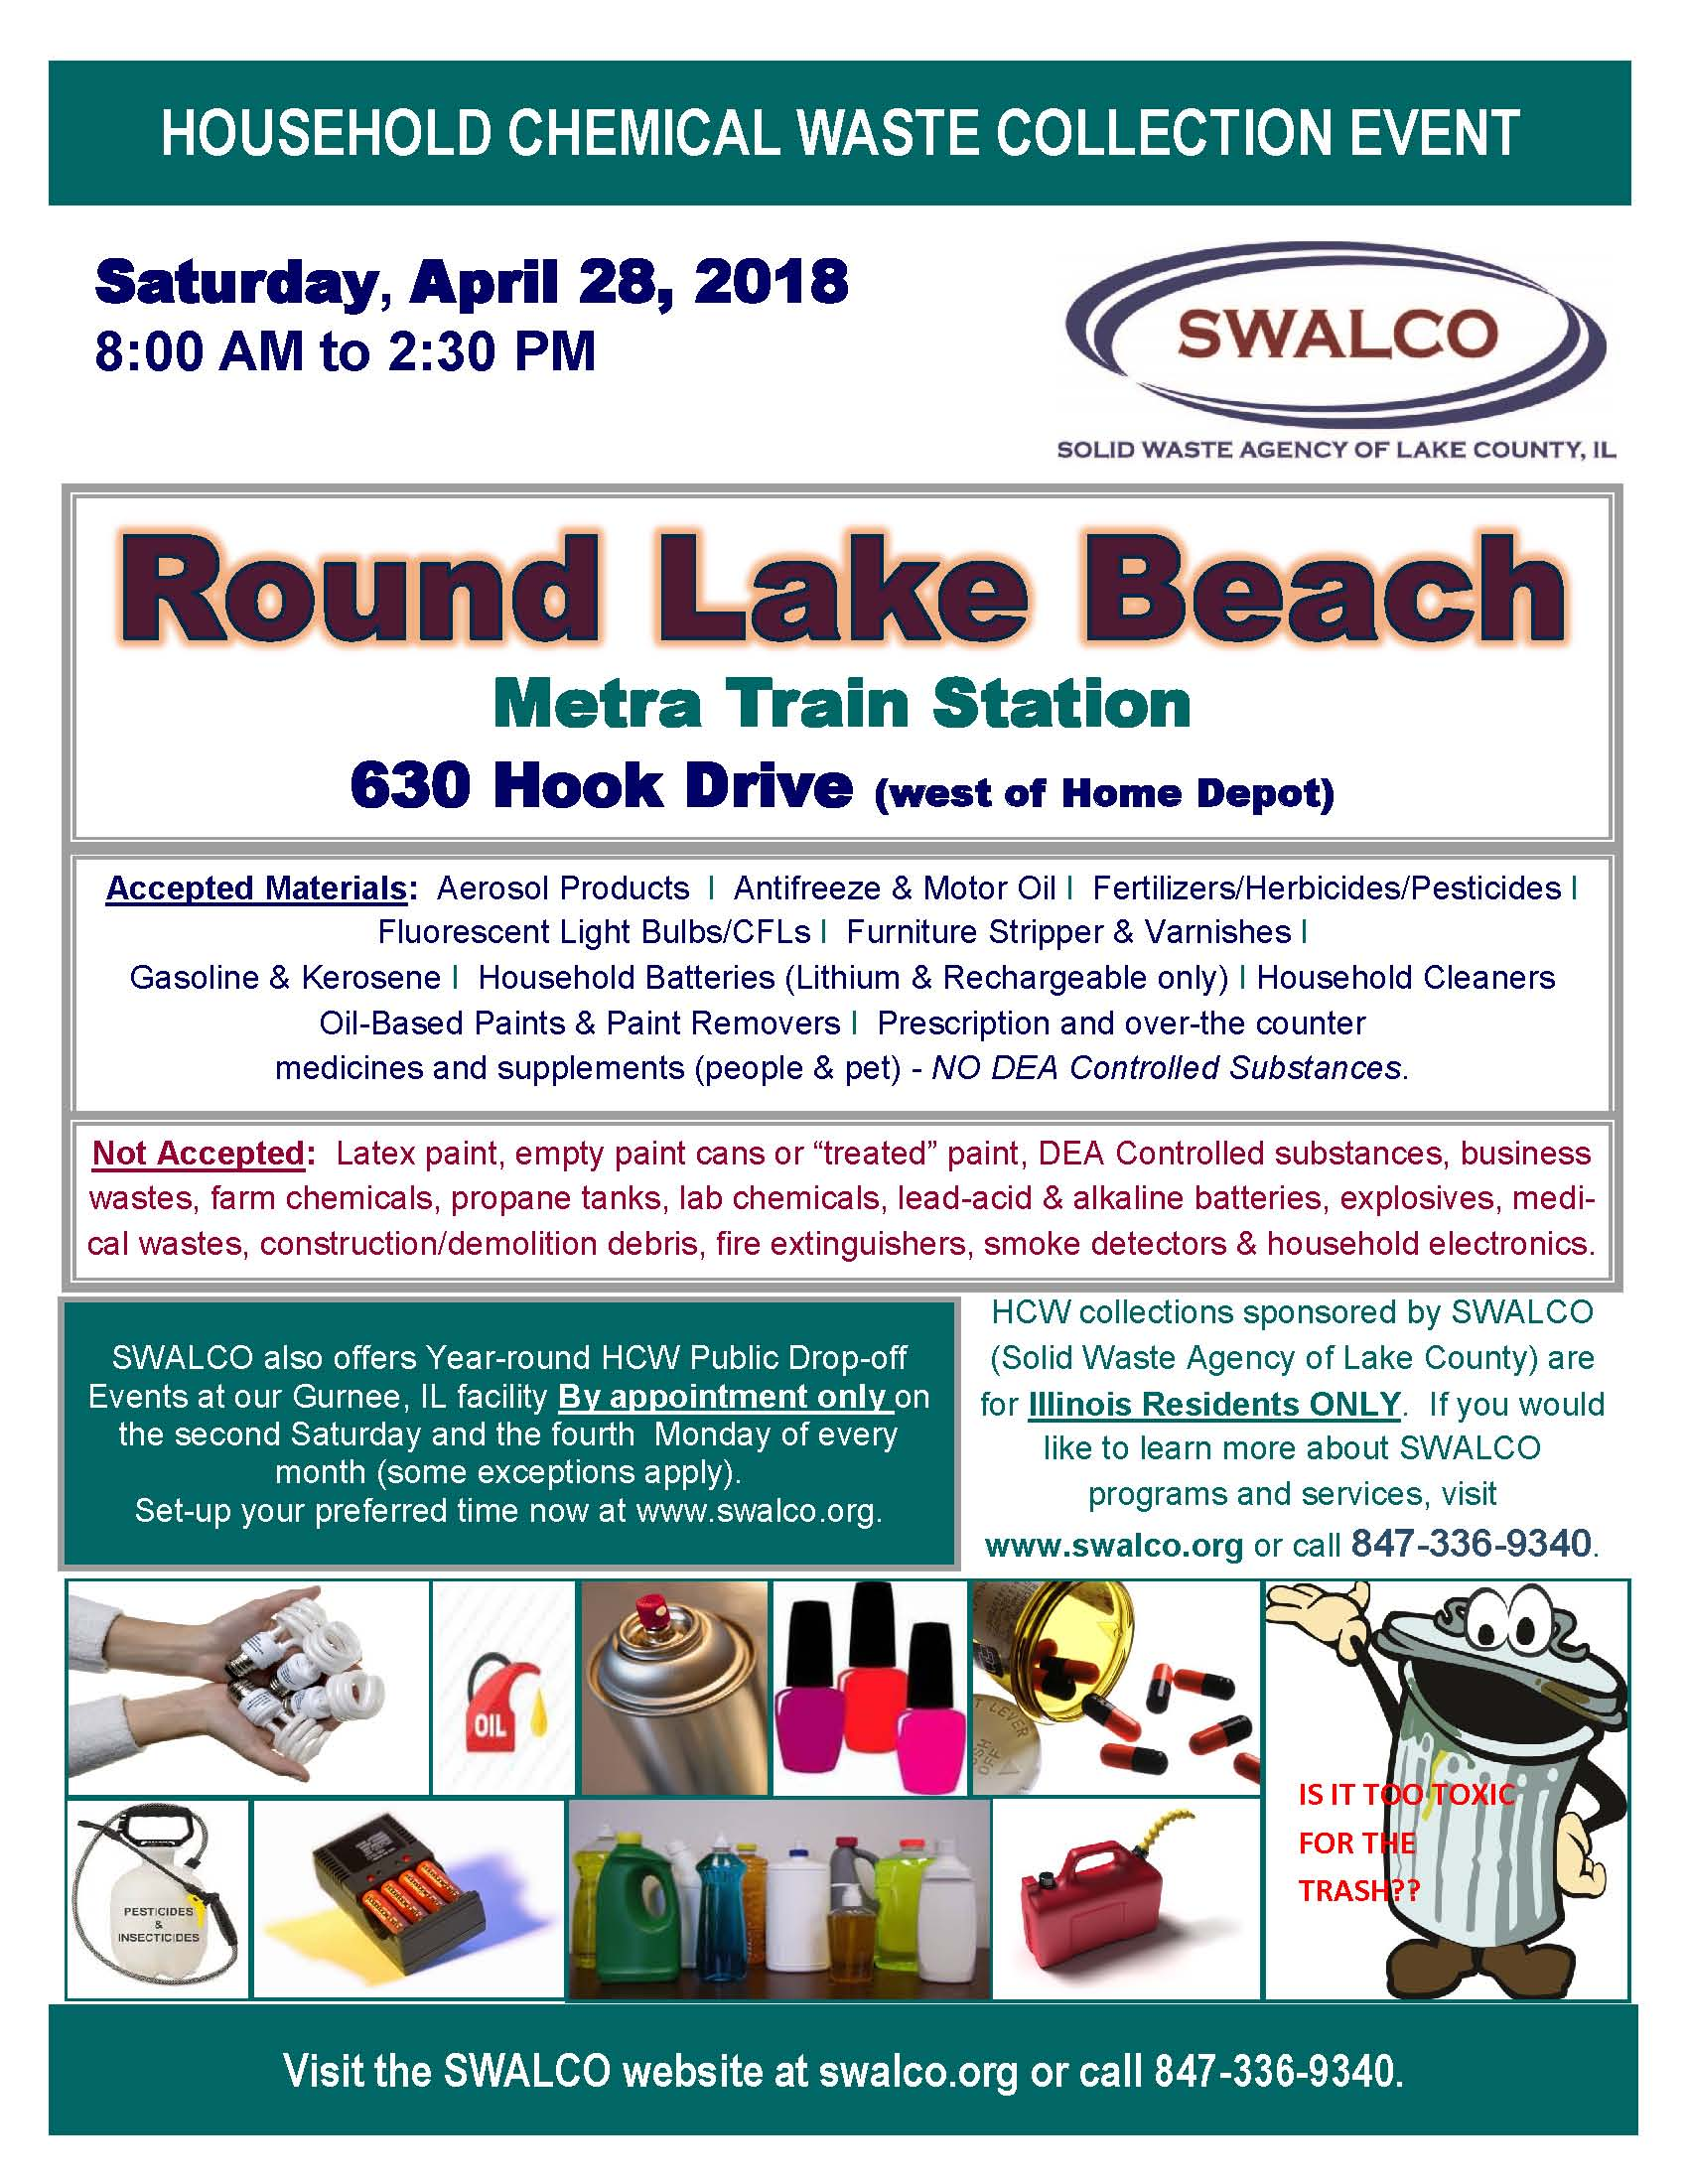 SWALCO Household chemical waste collection event 8 00AM – 2 30PM